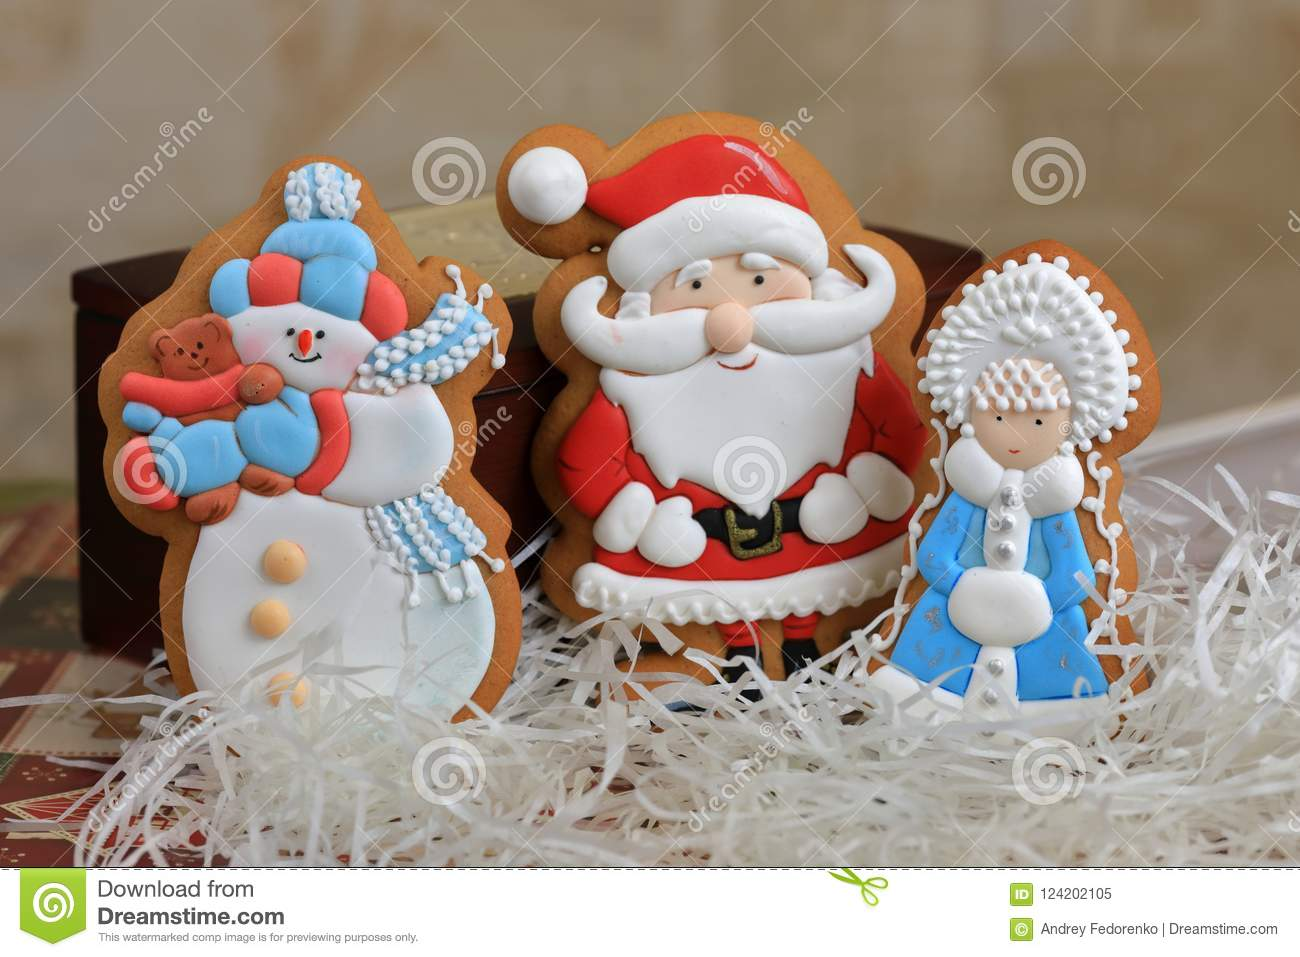 Christmas Tree Decorations Santa Claus Snow Maiden Snowman Gingerbread Stock Image Image Of Festive Gingerbread 124202105